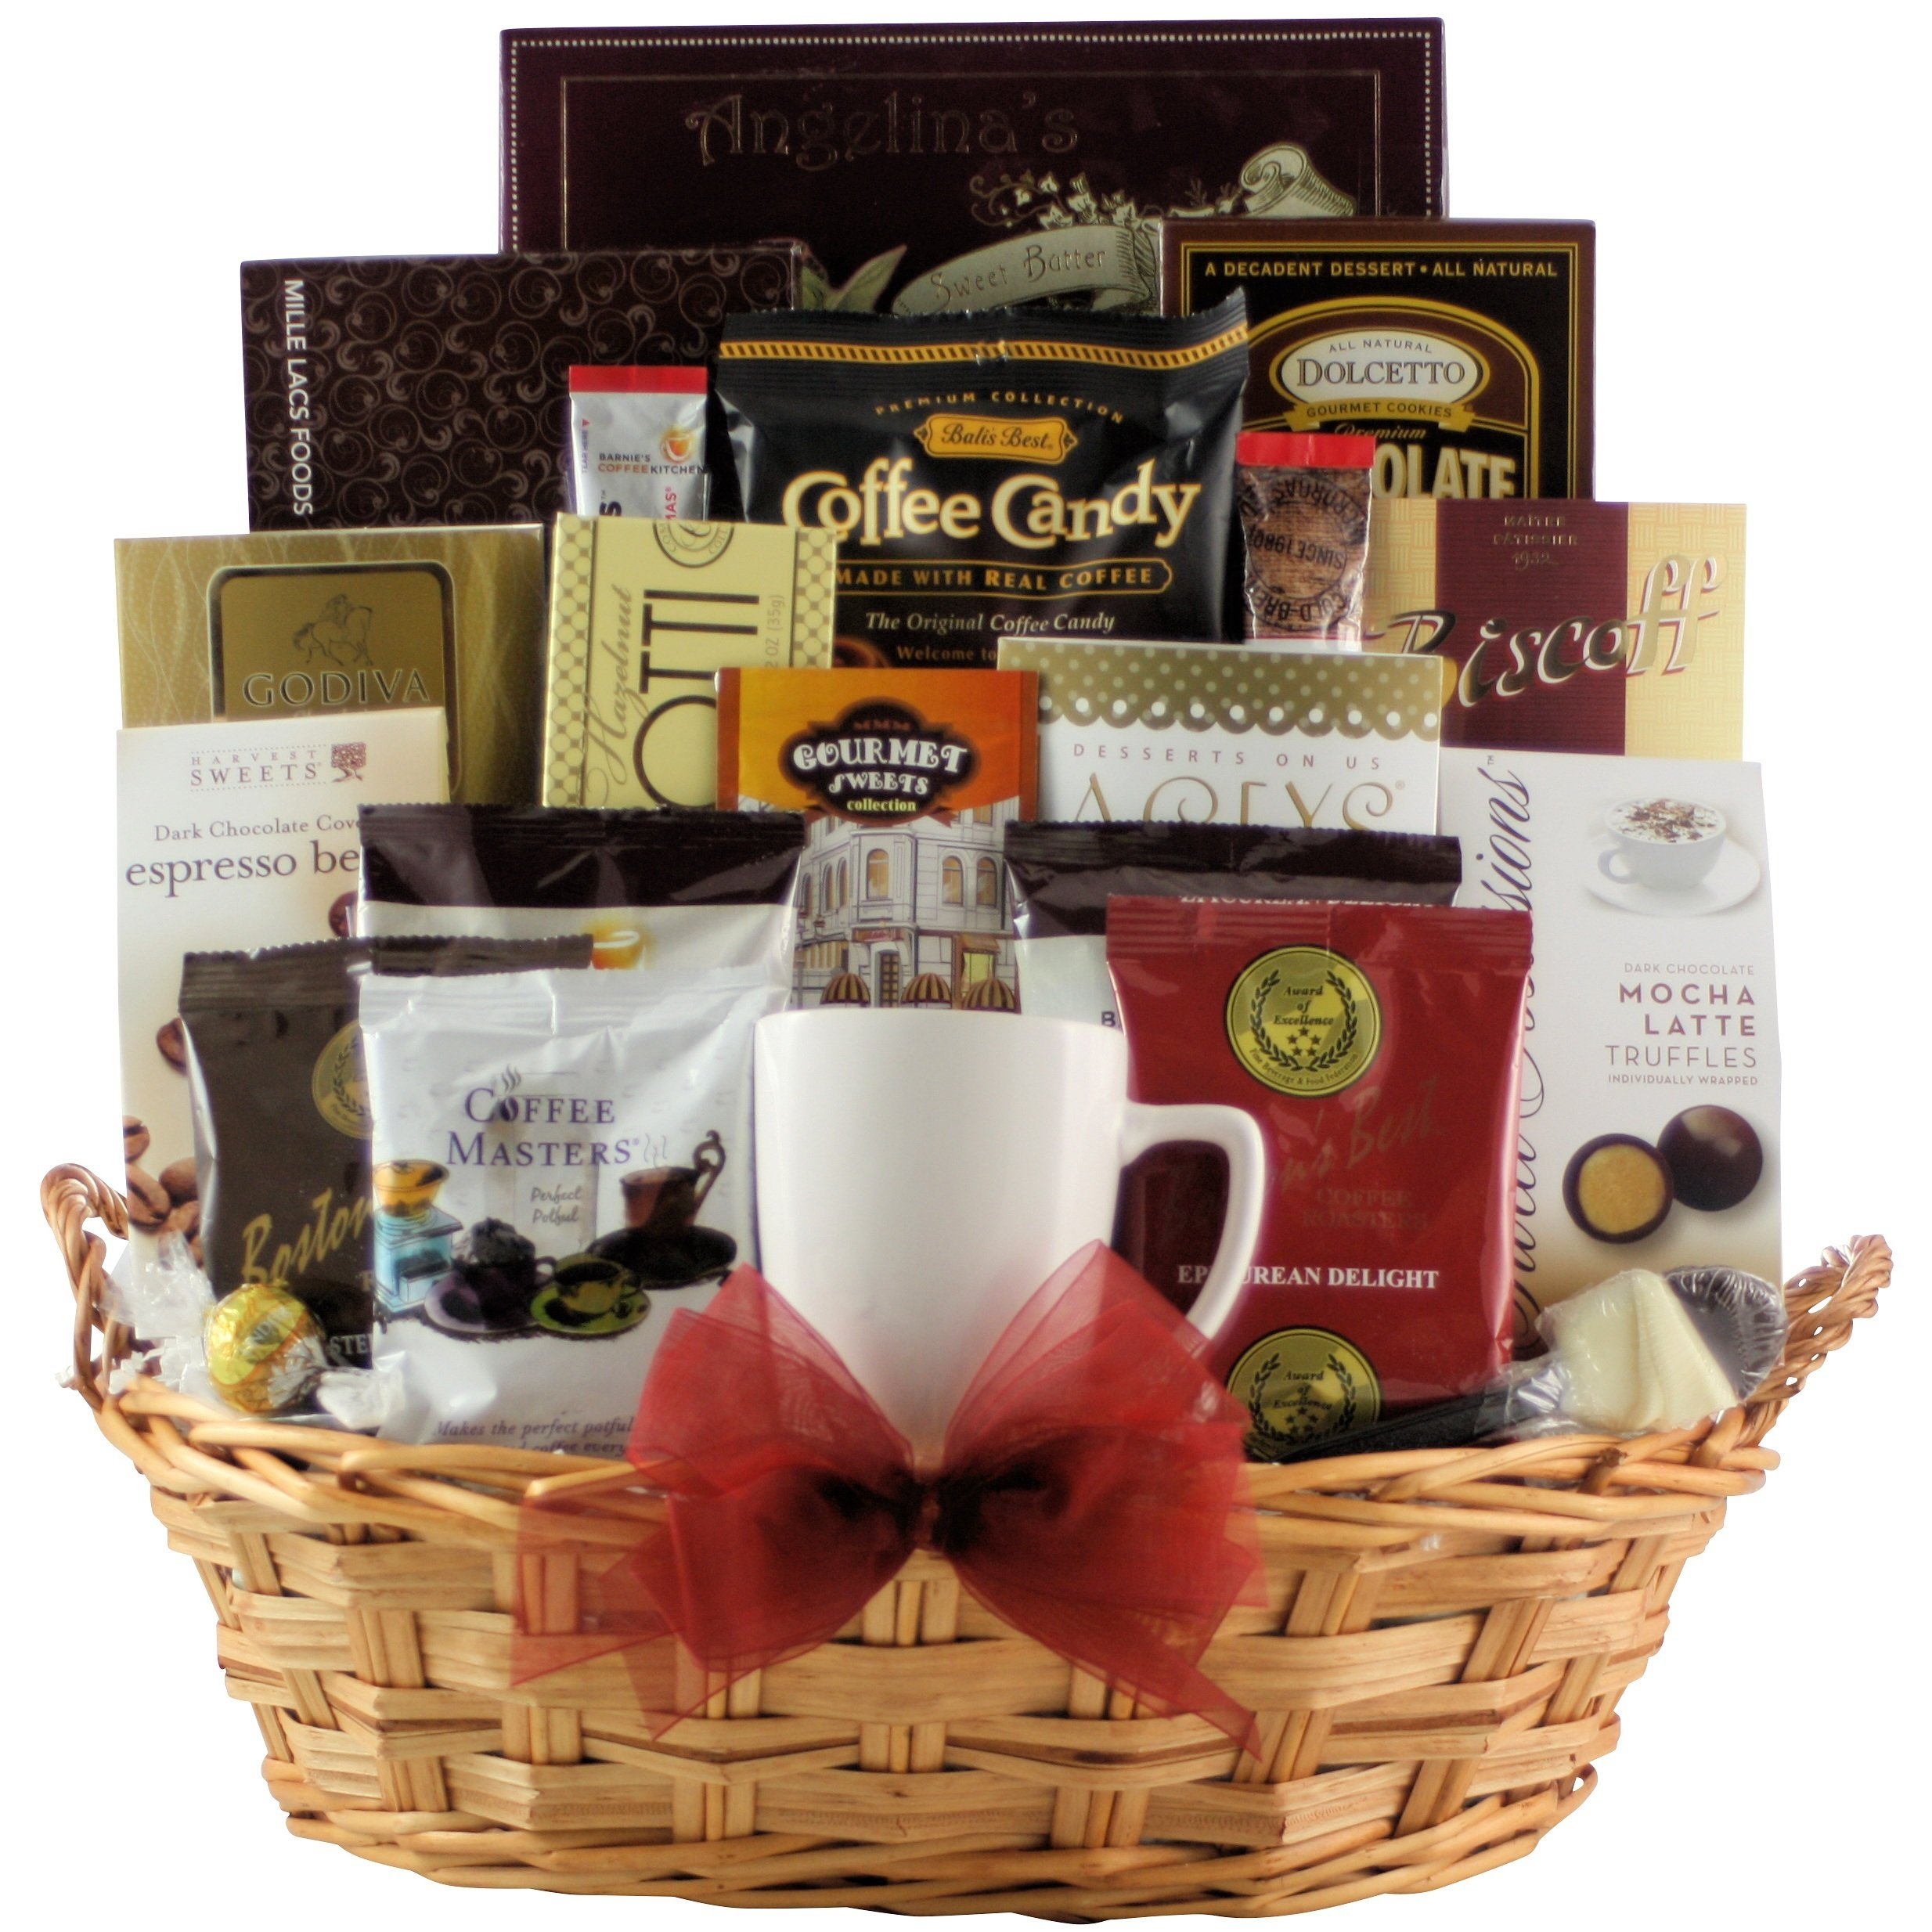 CDM product GreatArrivals Gift Baskets For the Love of Coffee: Gourmet Coffee Gift Basket, 3.18 Kilogram small thumbnail image